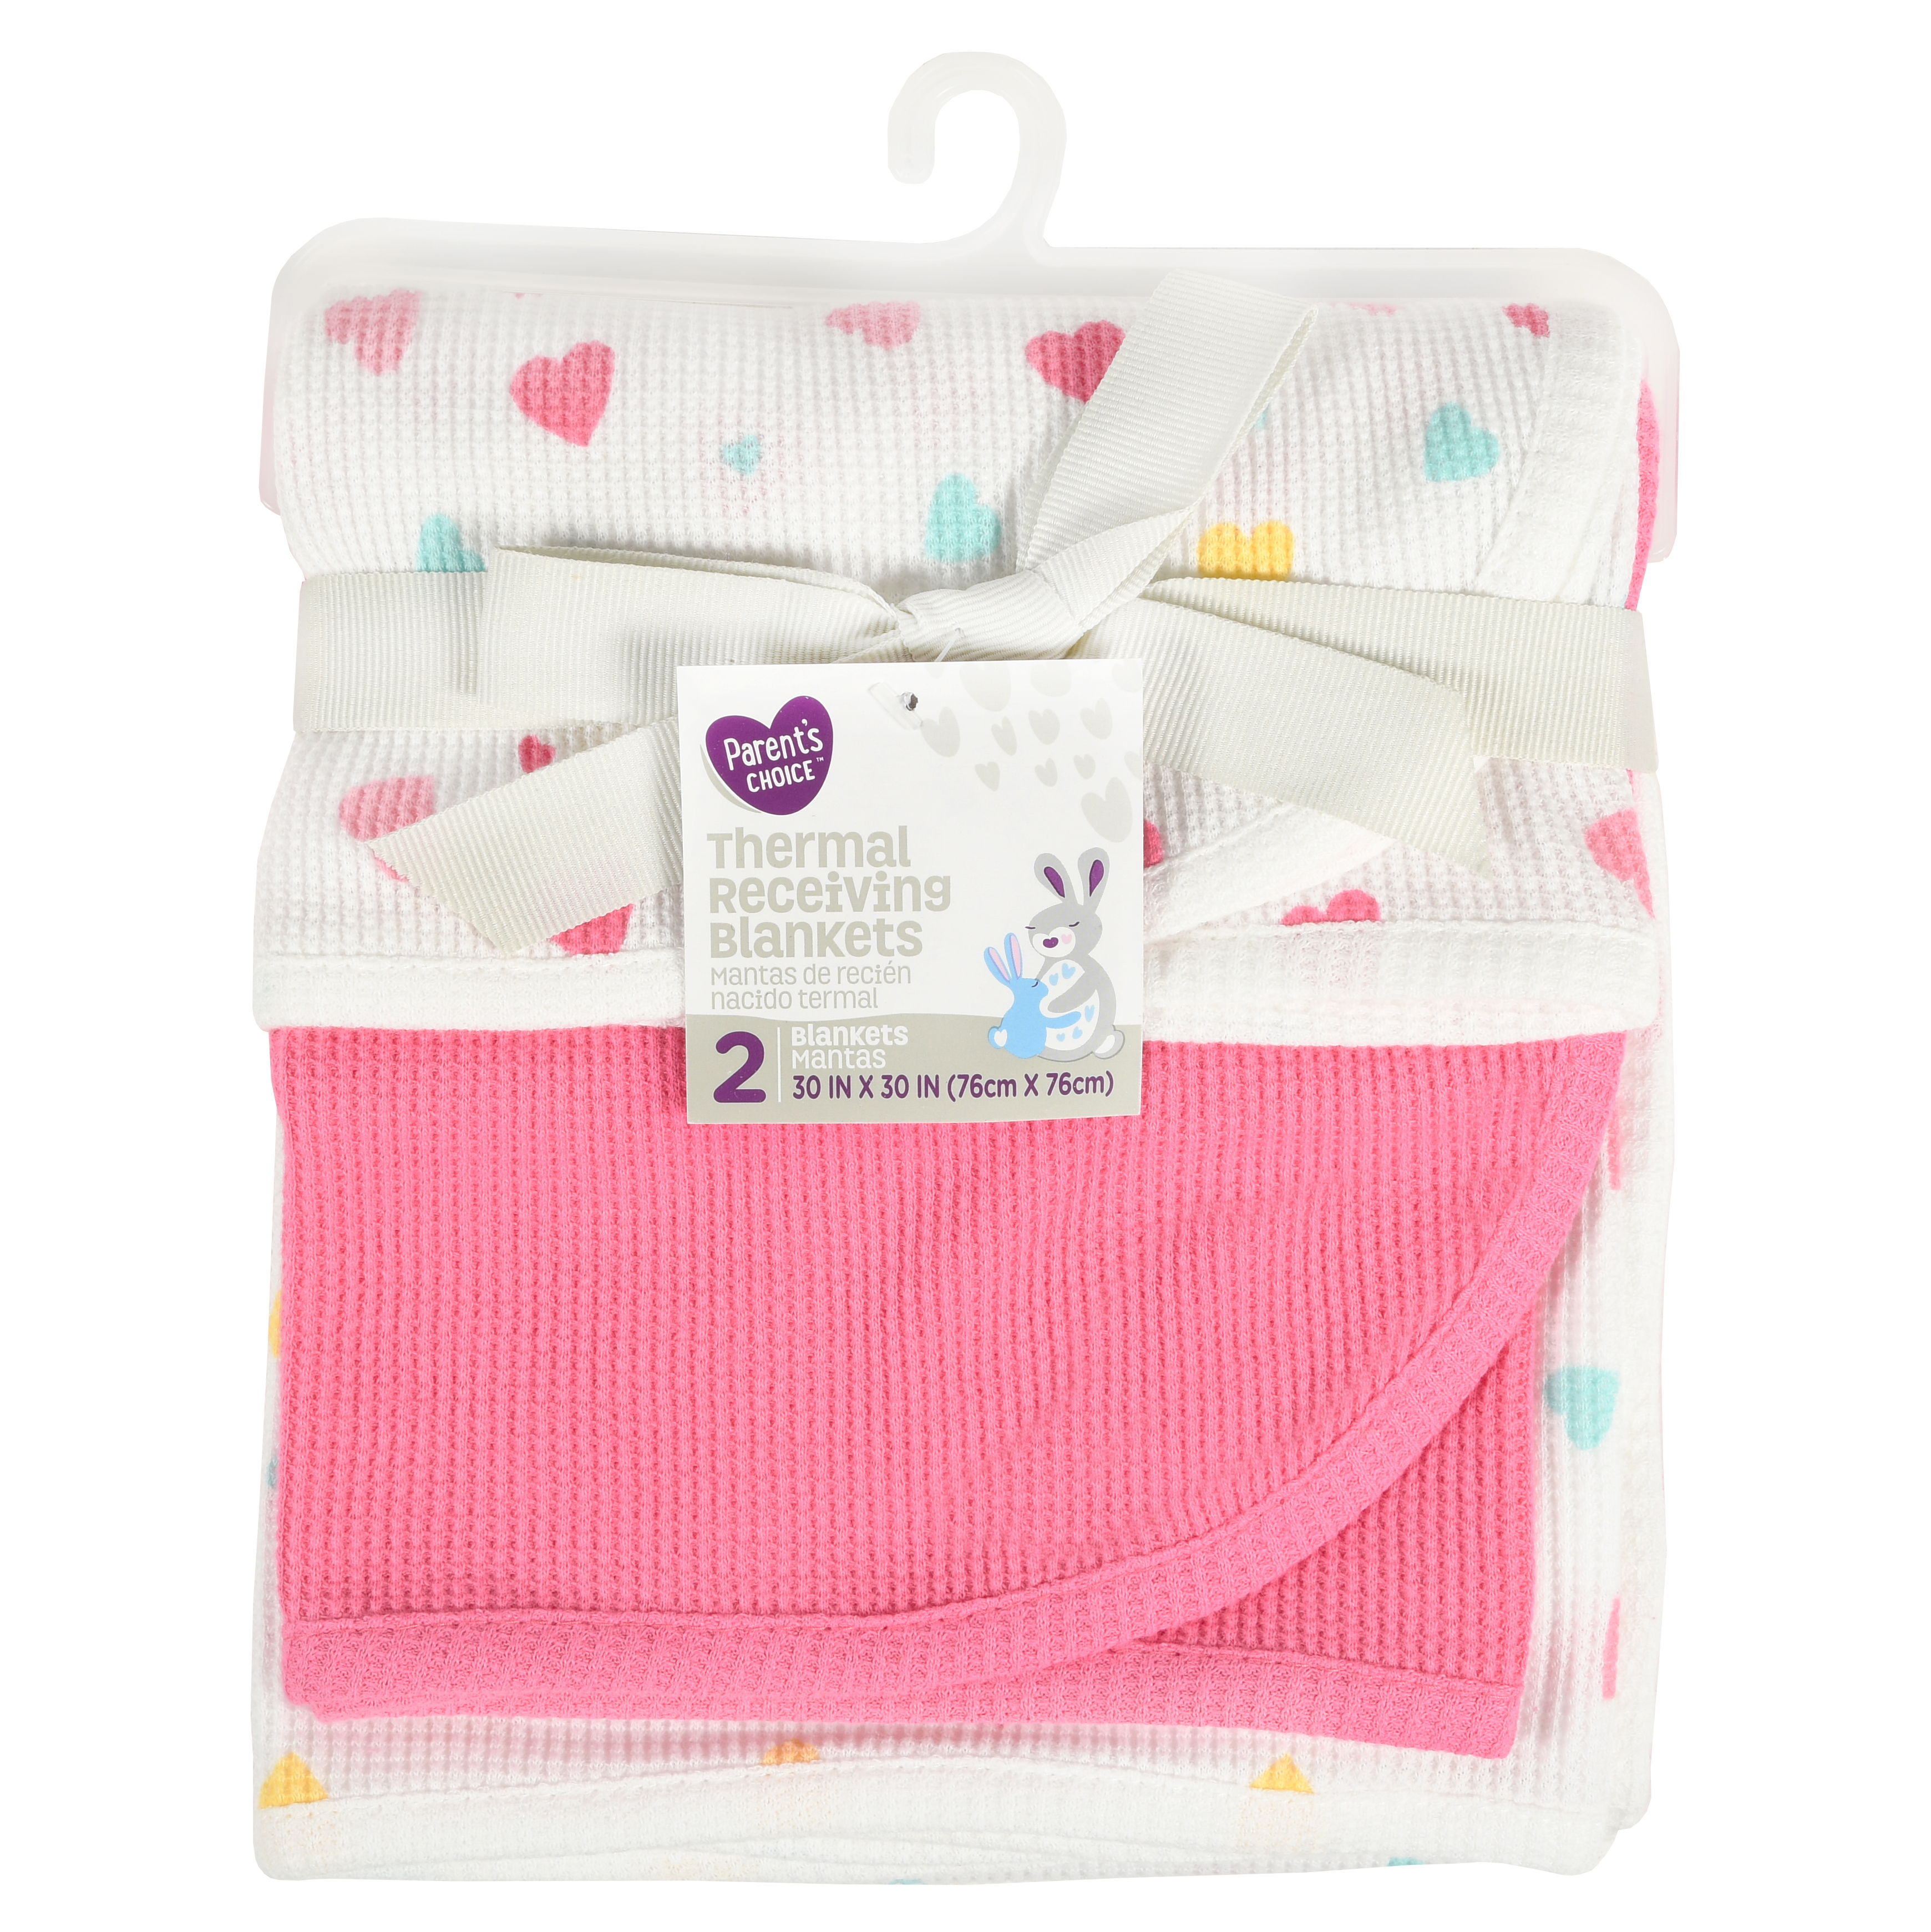 Parent's Choice Thermal Receiving Blankets, Hearts, 2 Piece